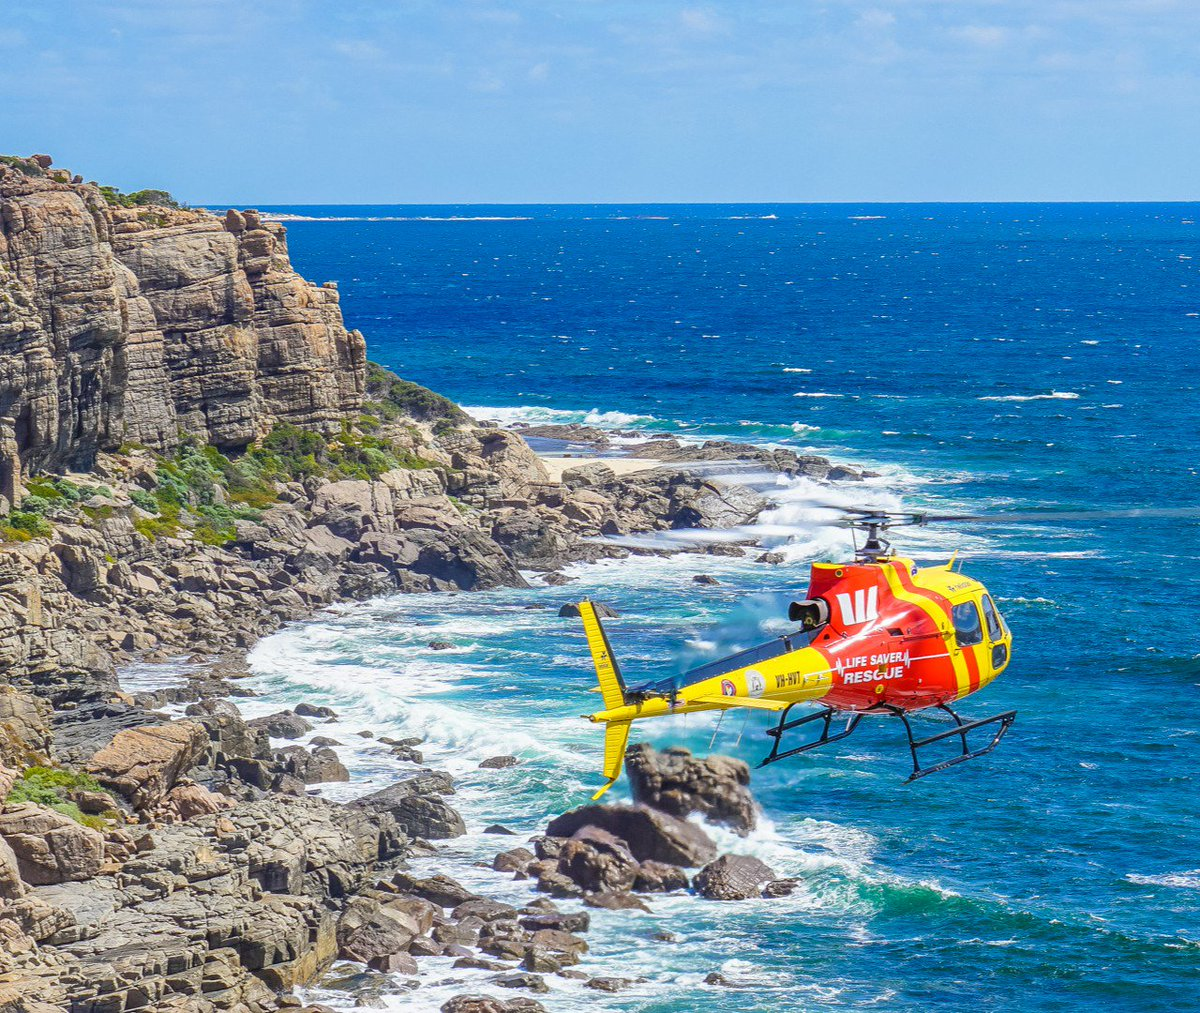 e5c081d27a2 ... so do our daily Westpac Lifesaver Rescue Helicopter Services for the  2018 19 season. The south-west service will be concluding tomorrow